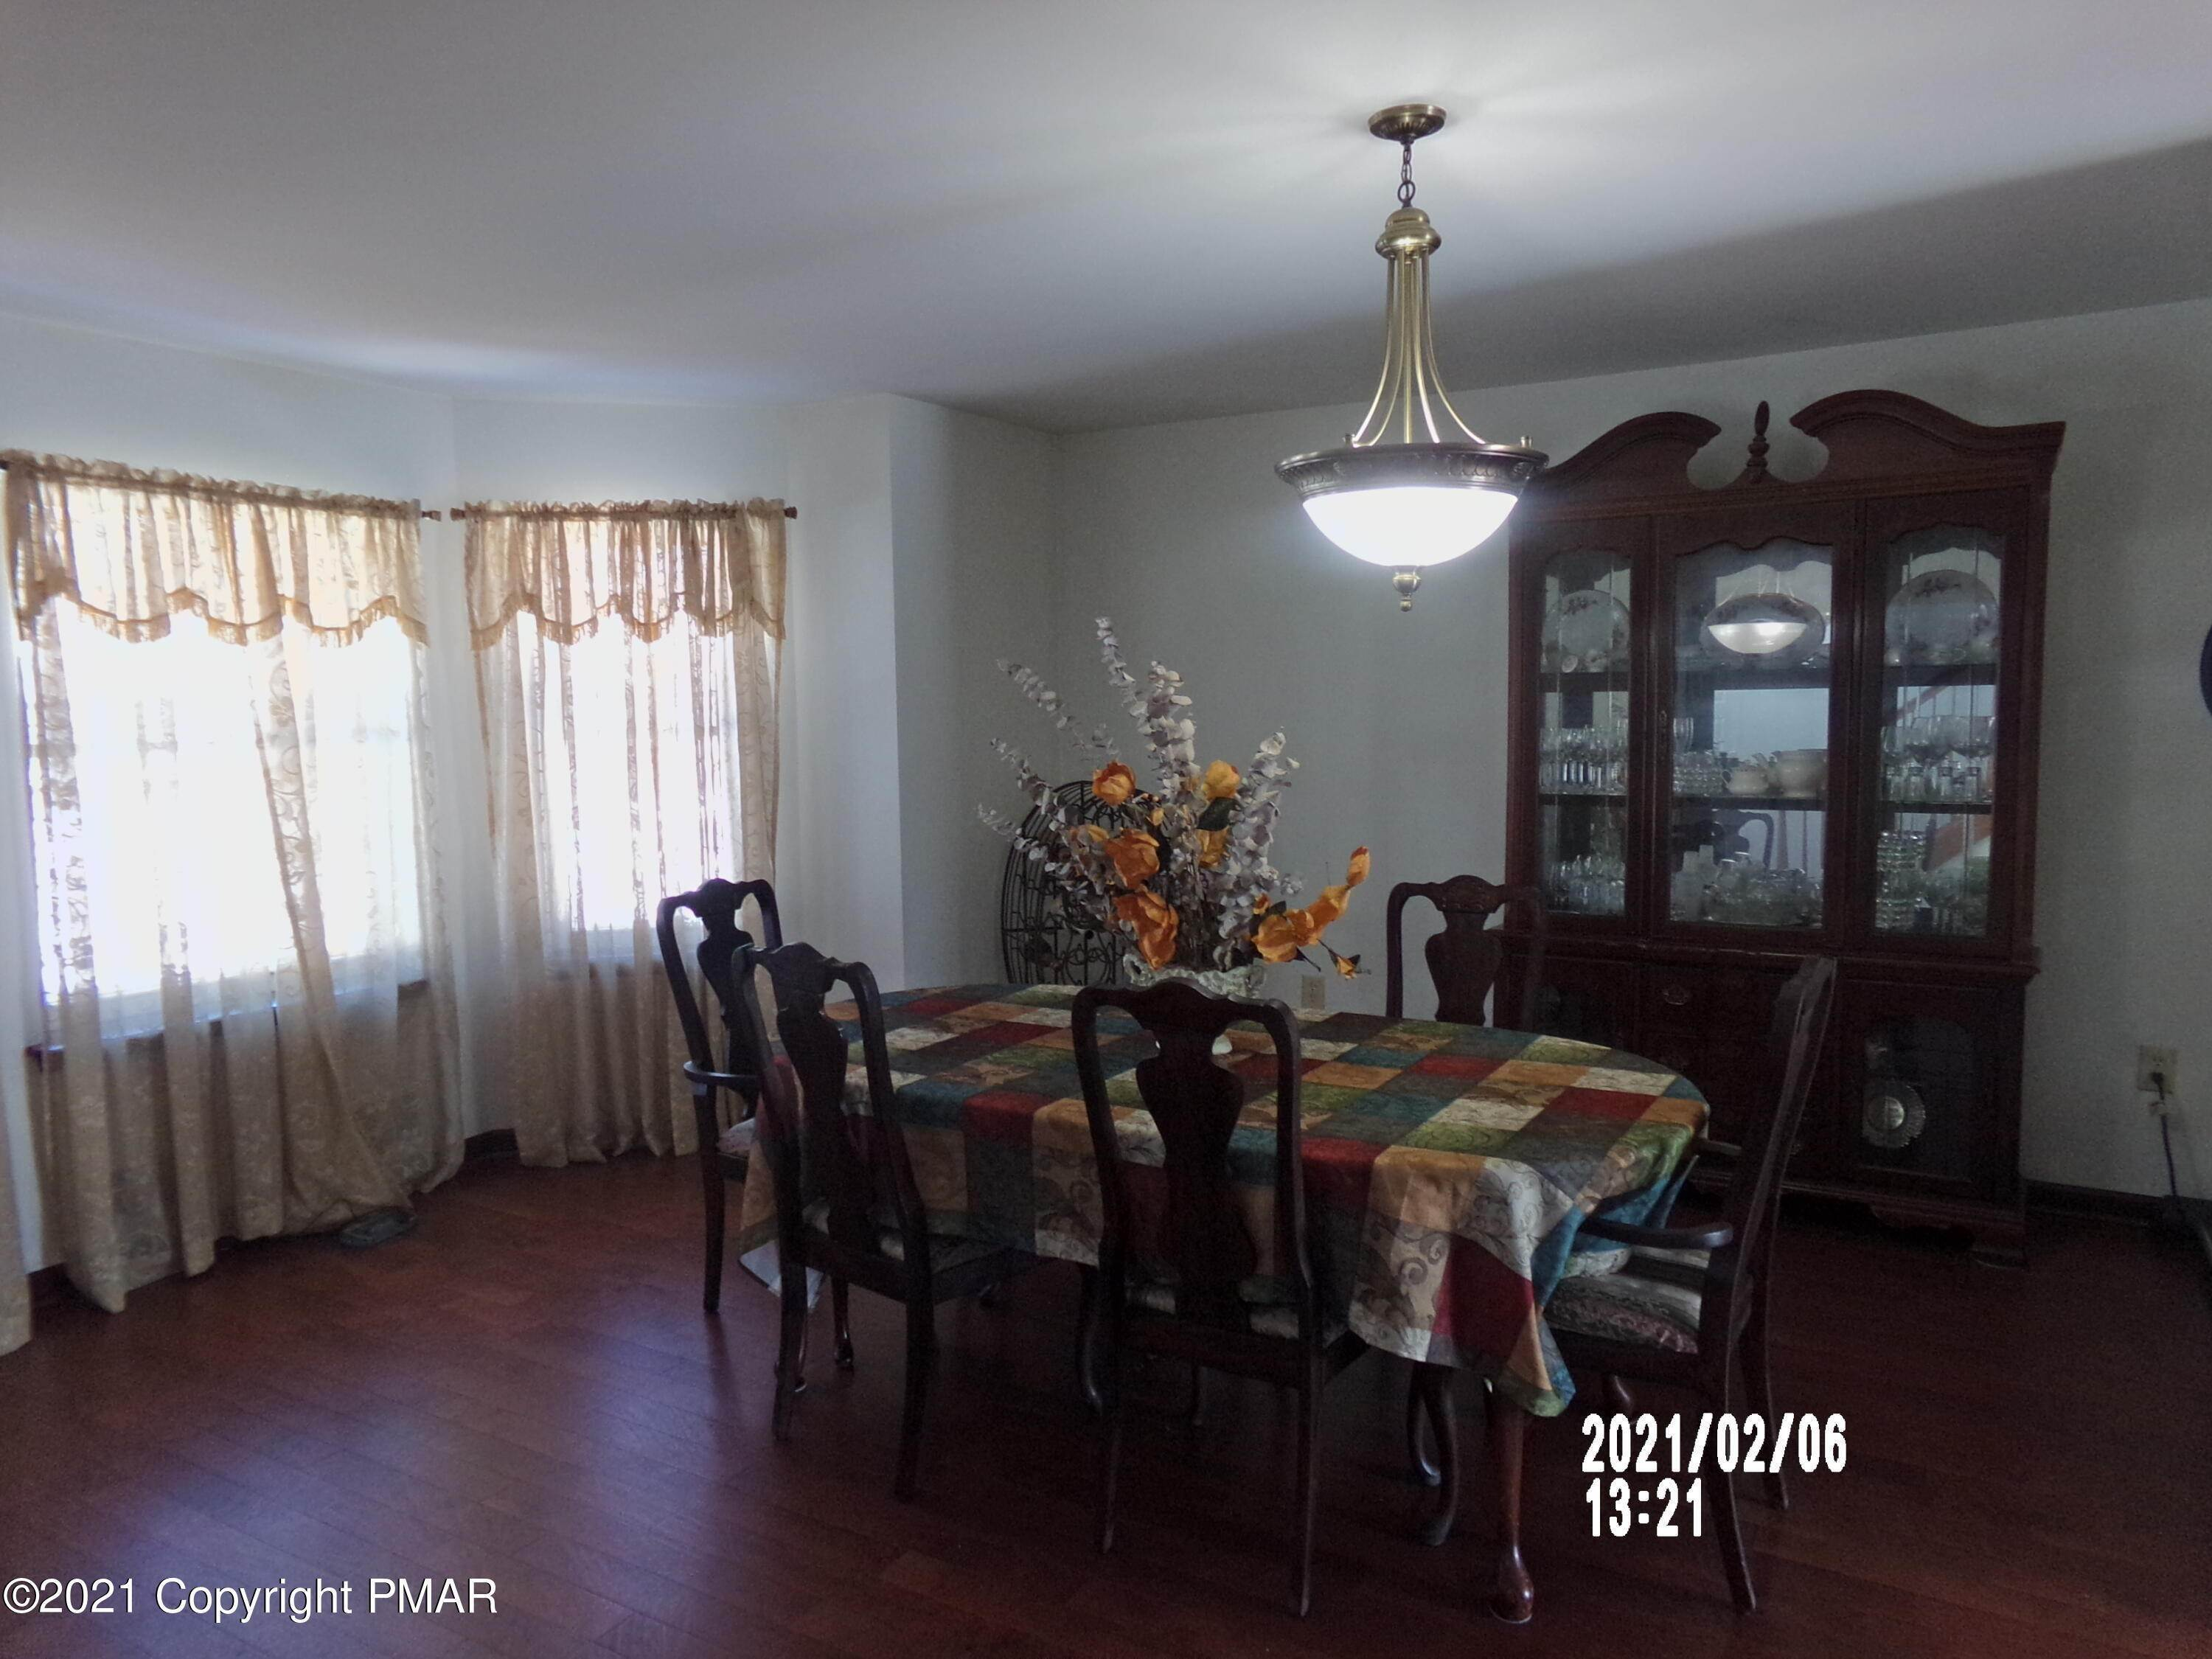 3. Single Family Homes for Sale at 55 Talbot Ln Albrightsville, Pennsylvania 18210 United States